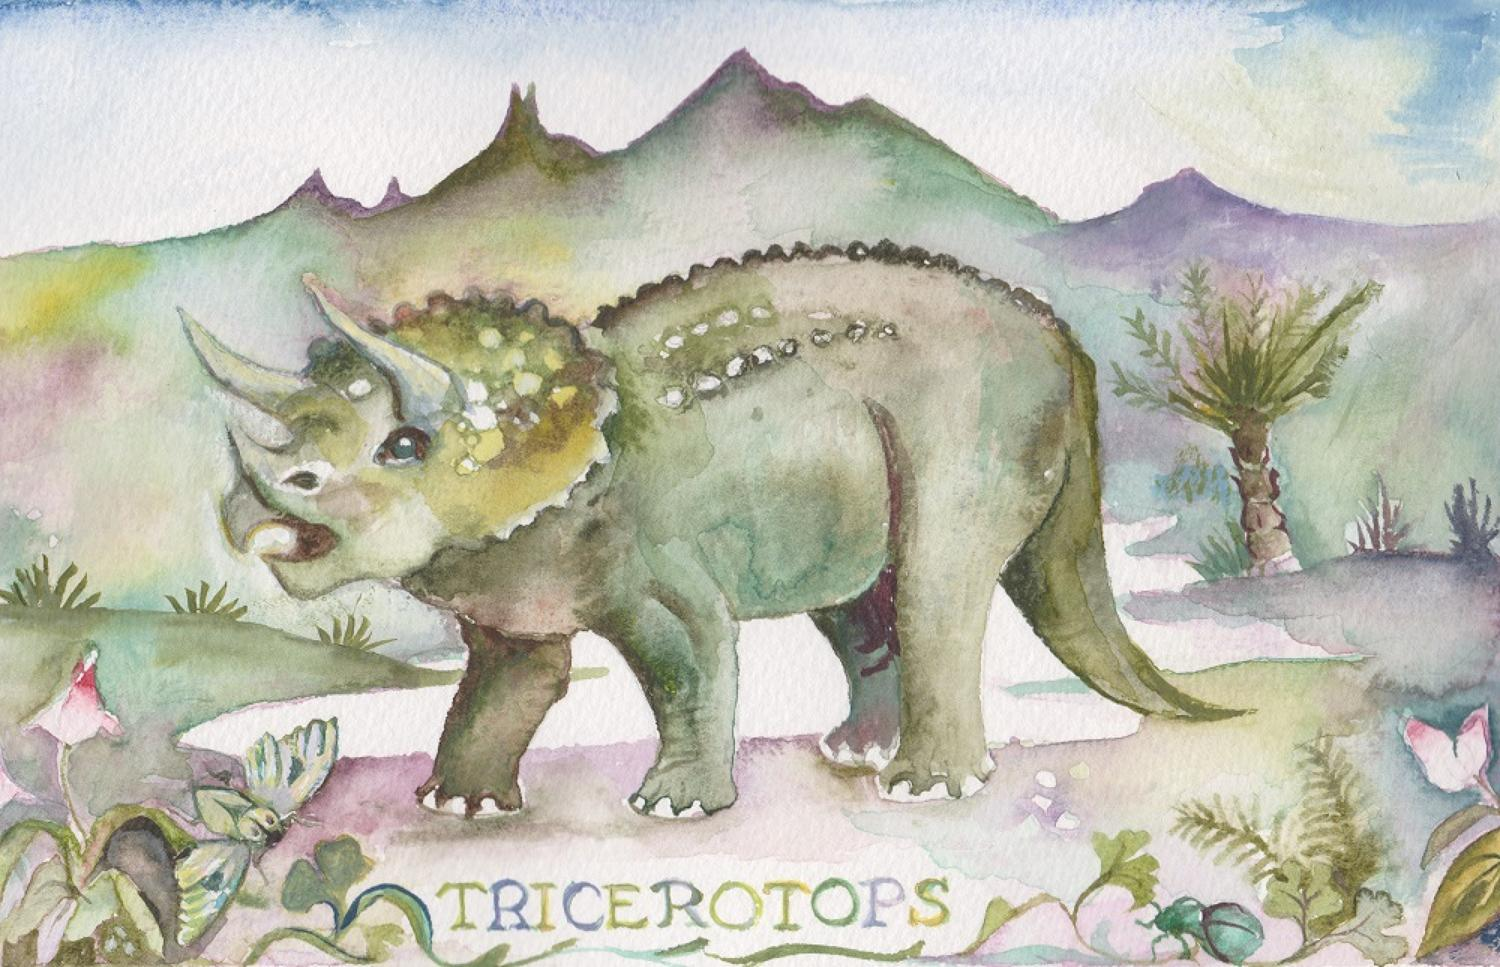 Tricerotops